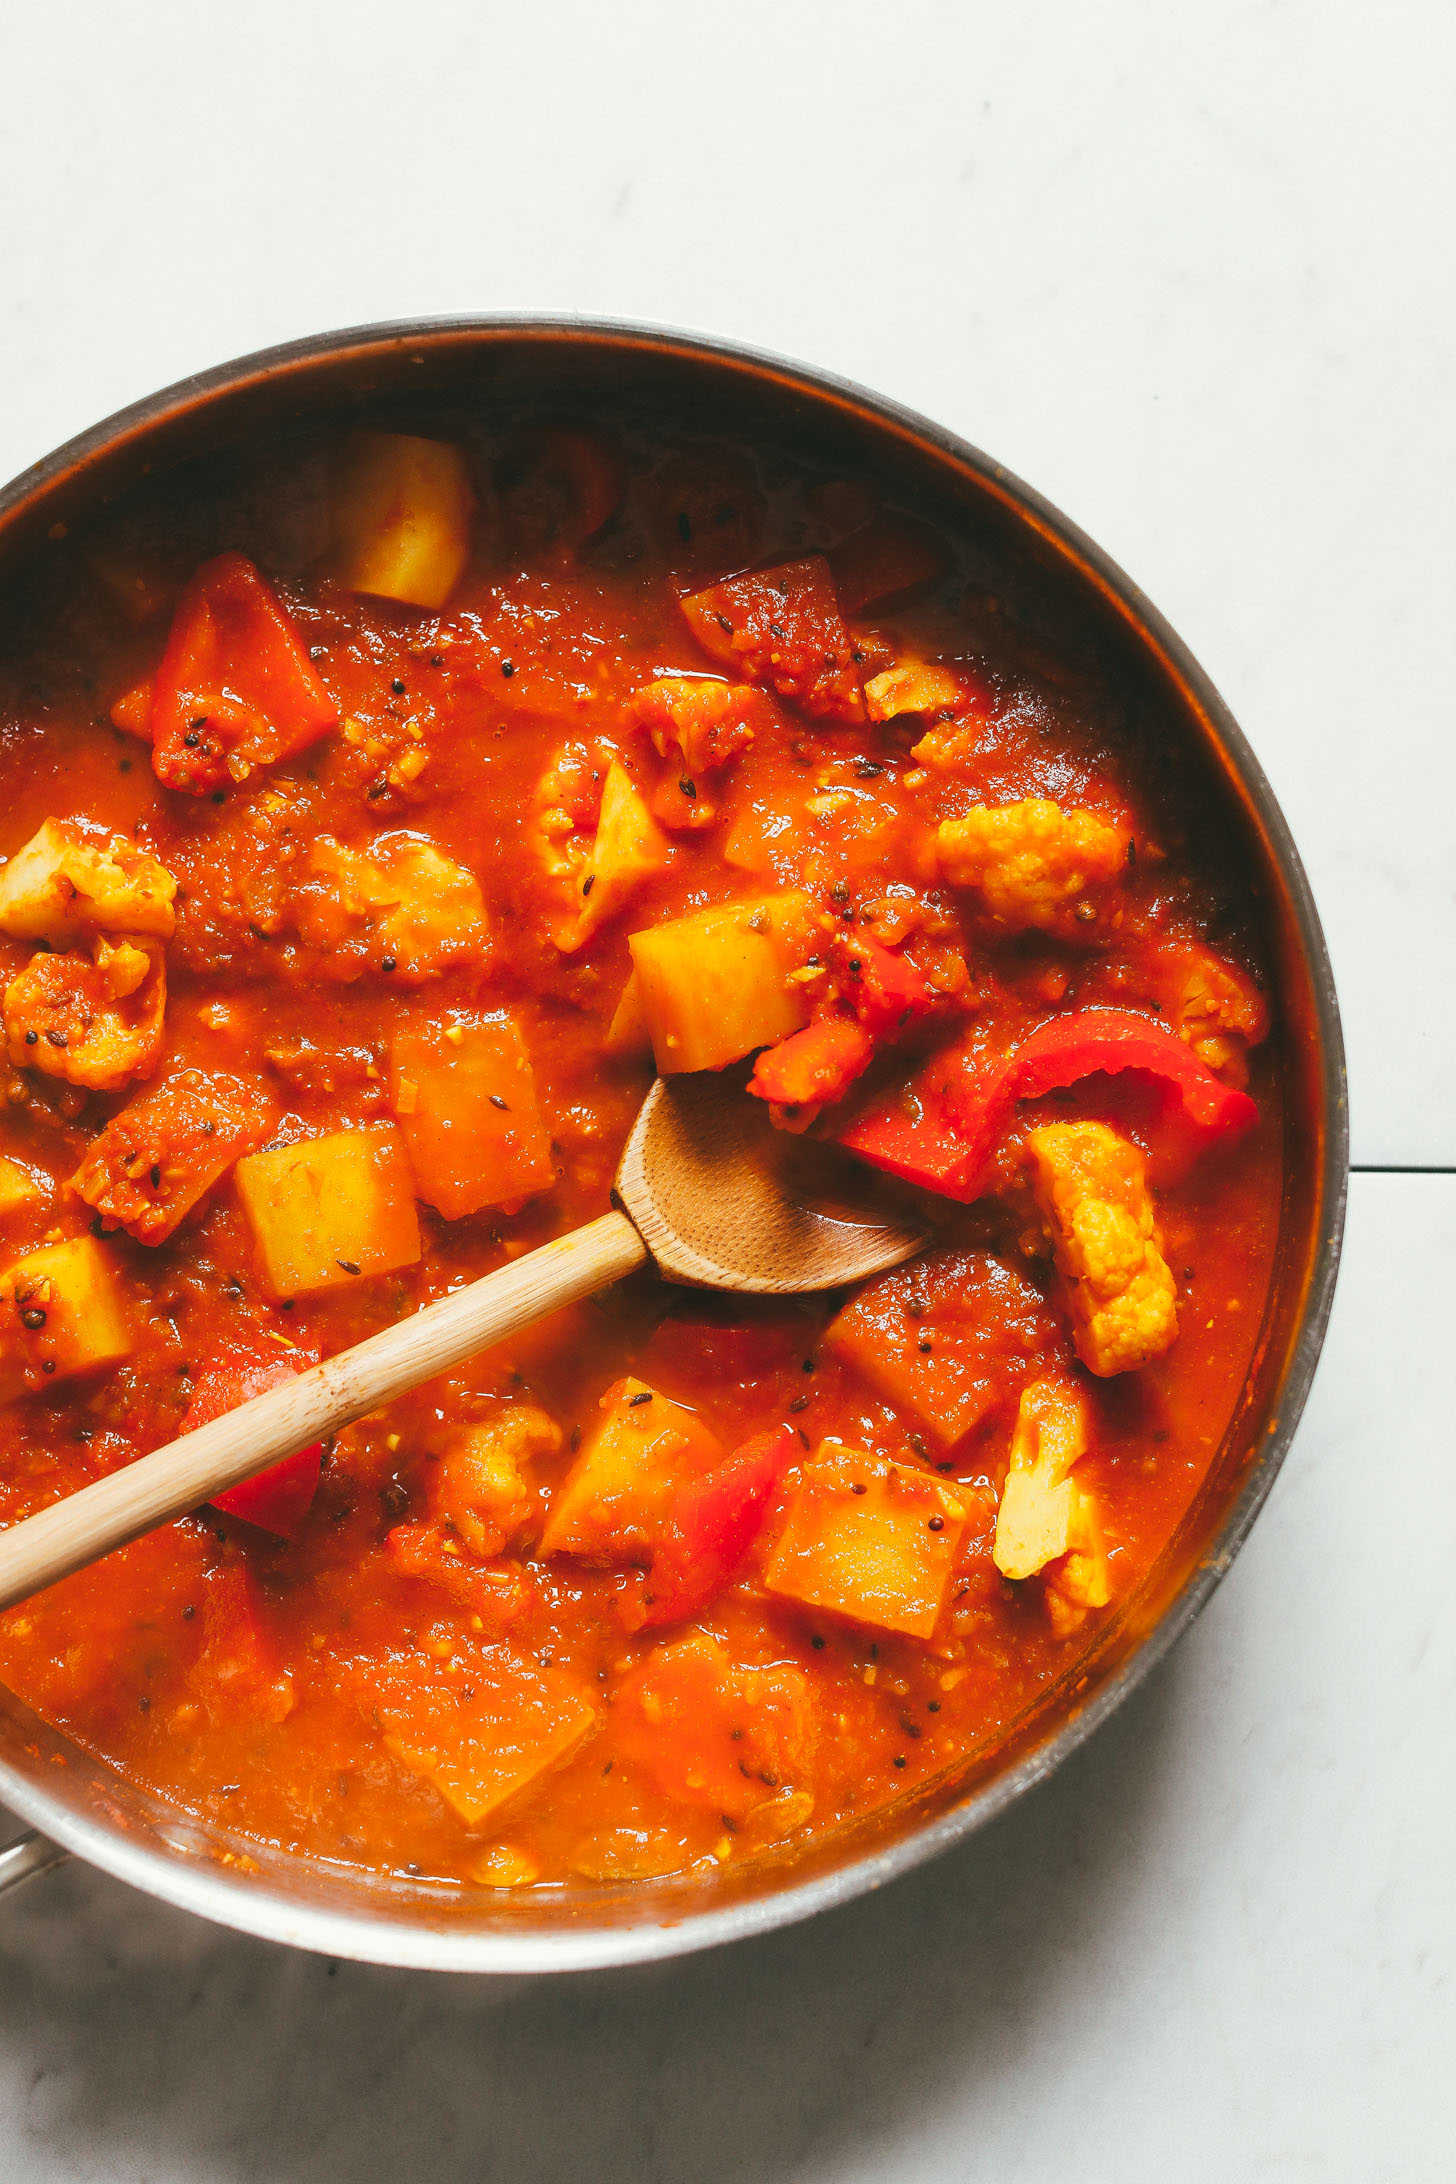 An overhead image of a pan with red lentil curry, potatoes, red bell pepper, and cauliflower being stirred with a wooden spoon